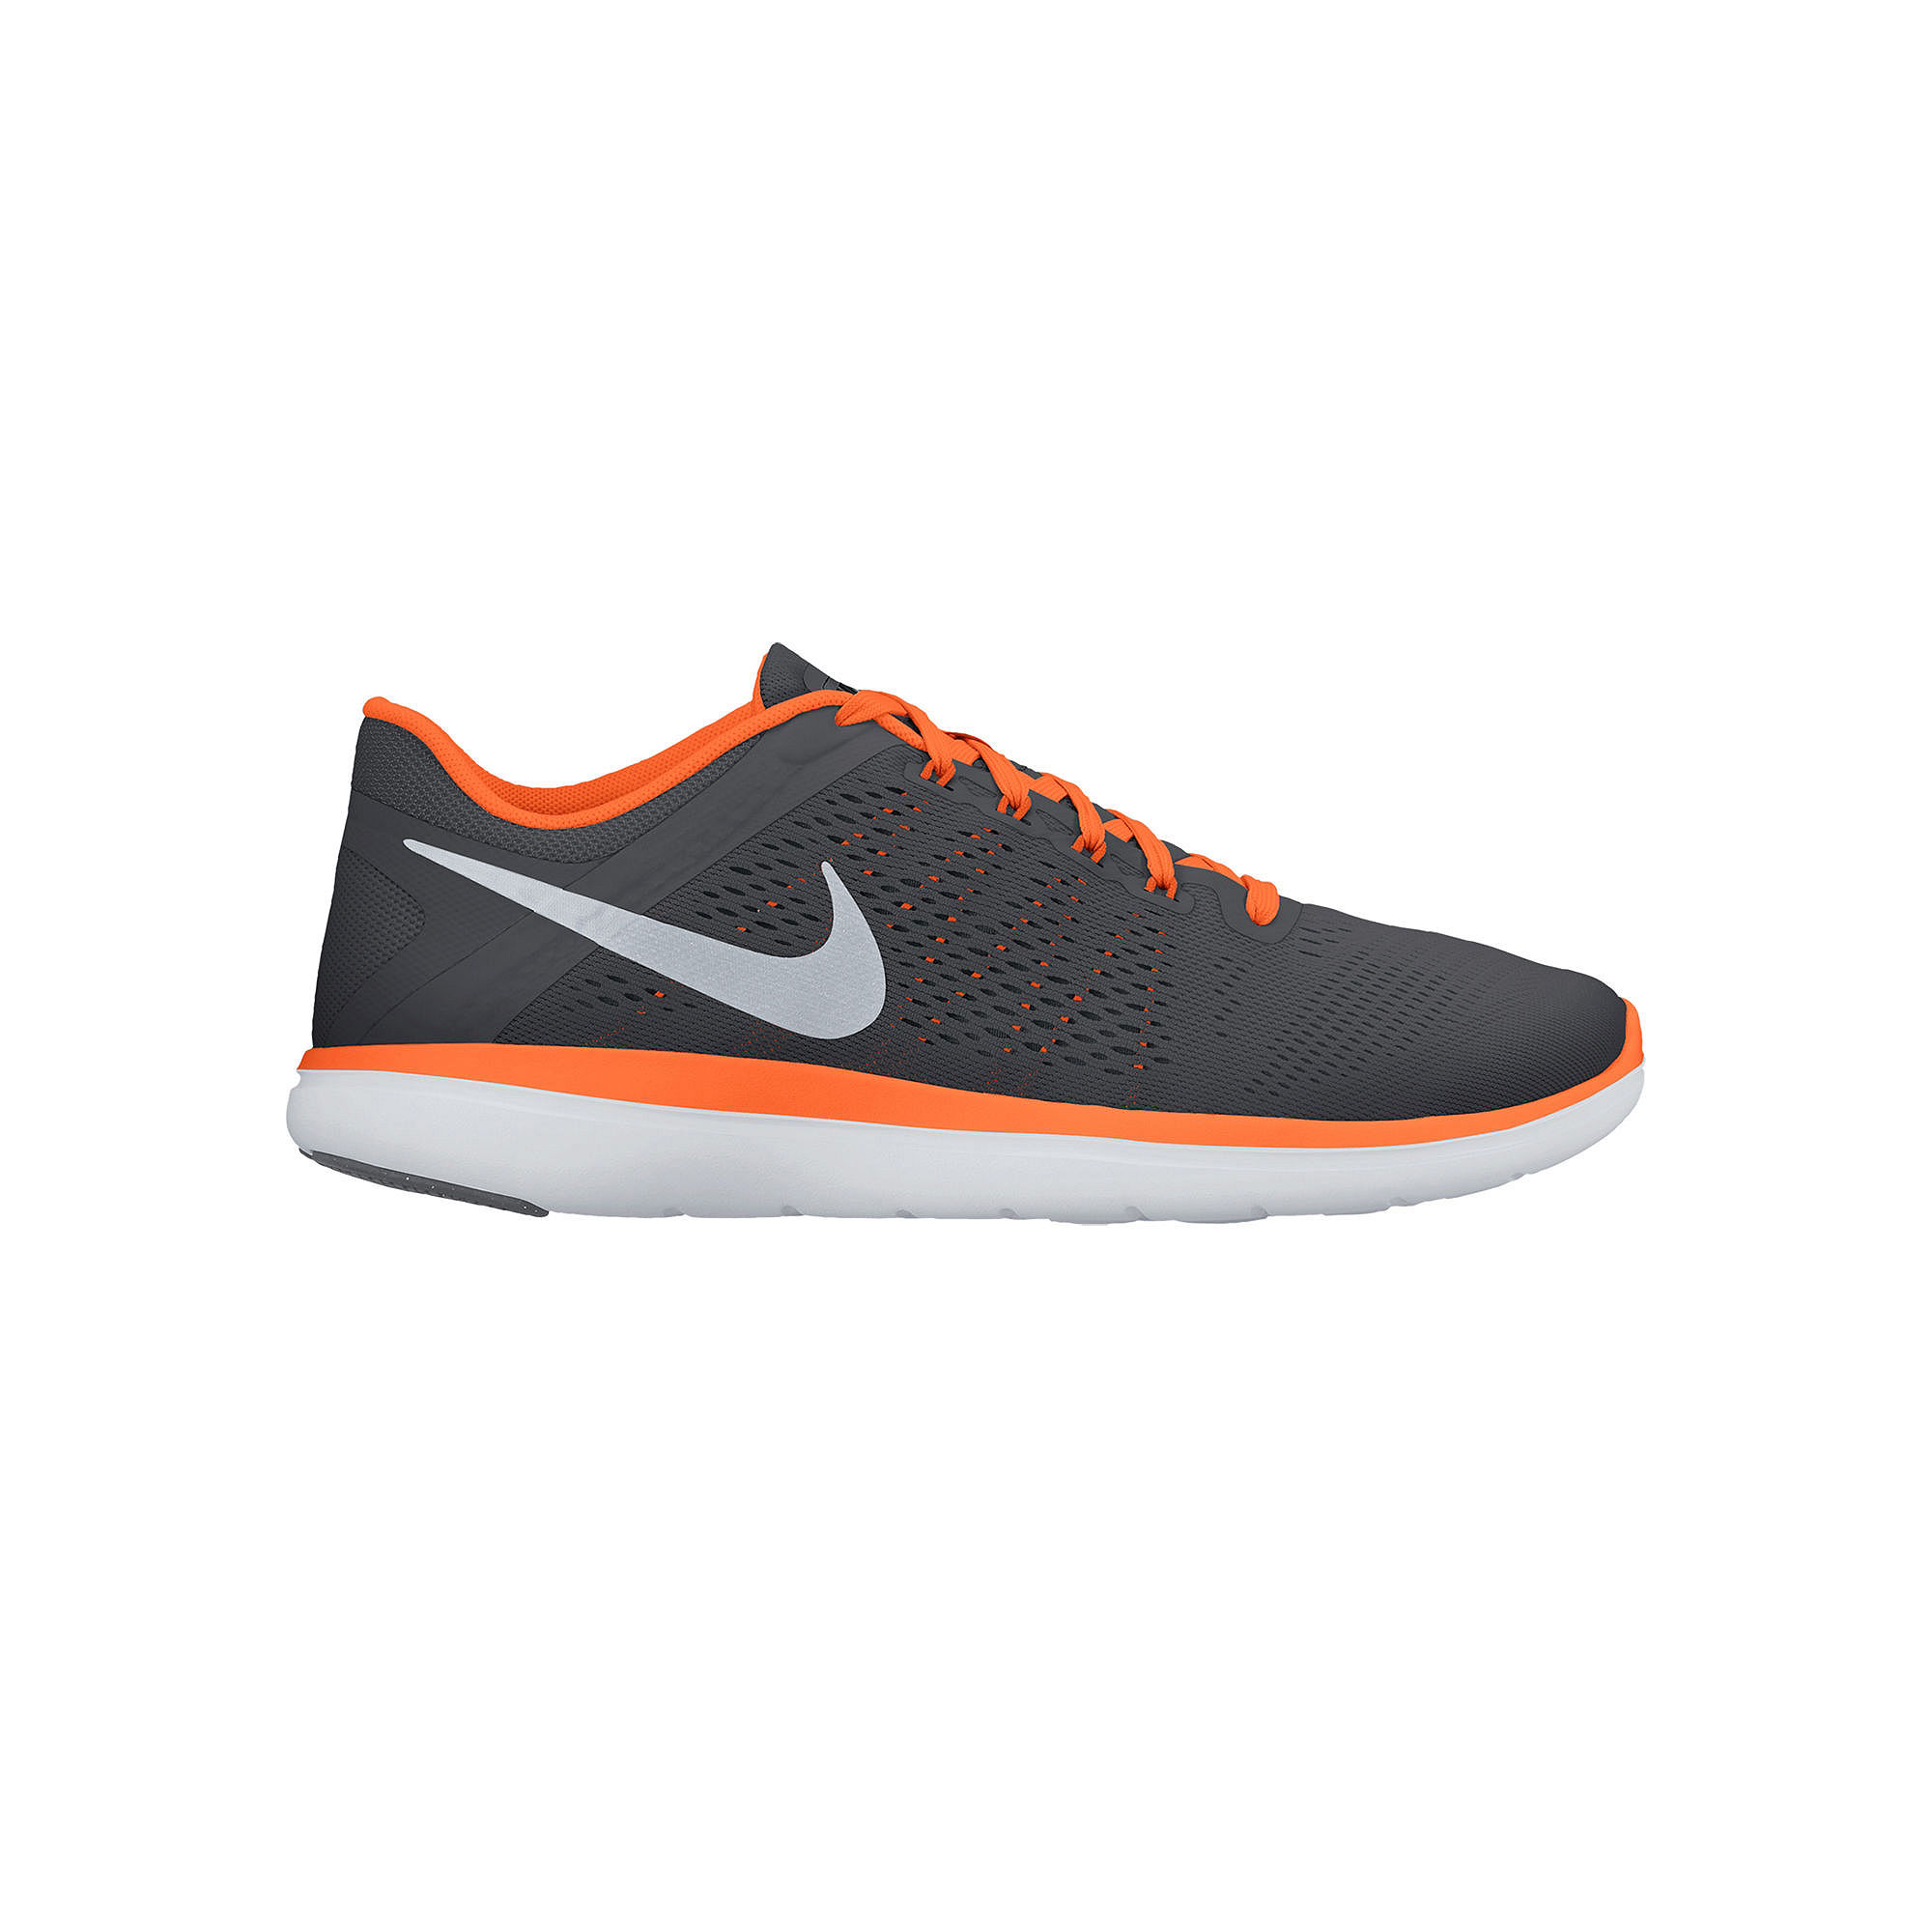 ... UPC 886548703012 product image for Nike Flex Mens Running Shoes |  upcitemdb.com